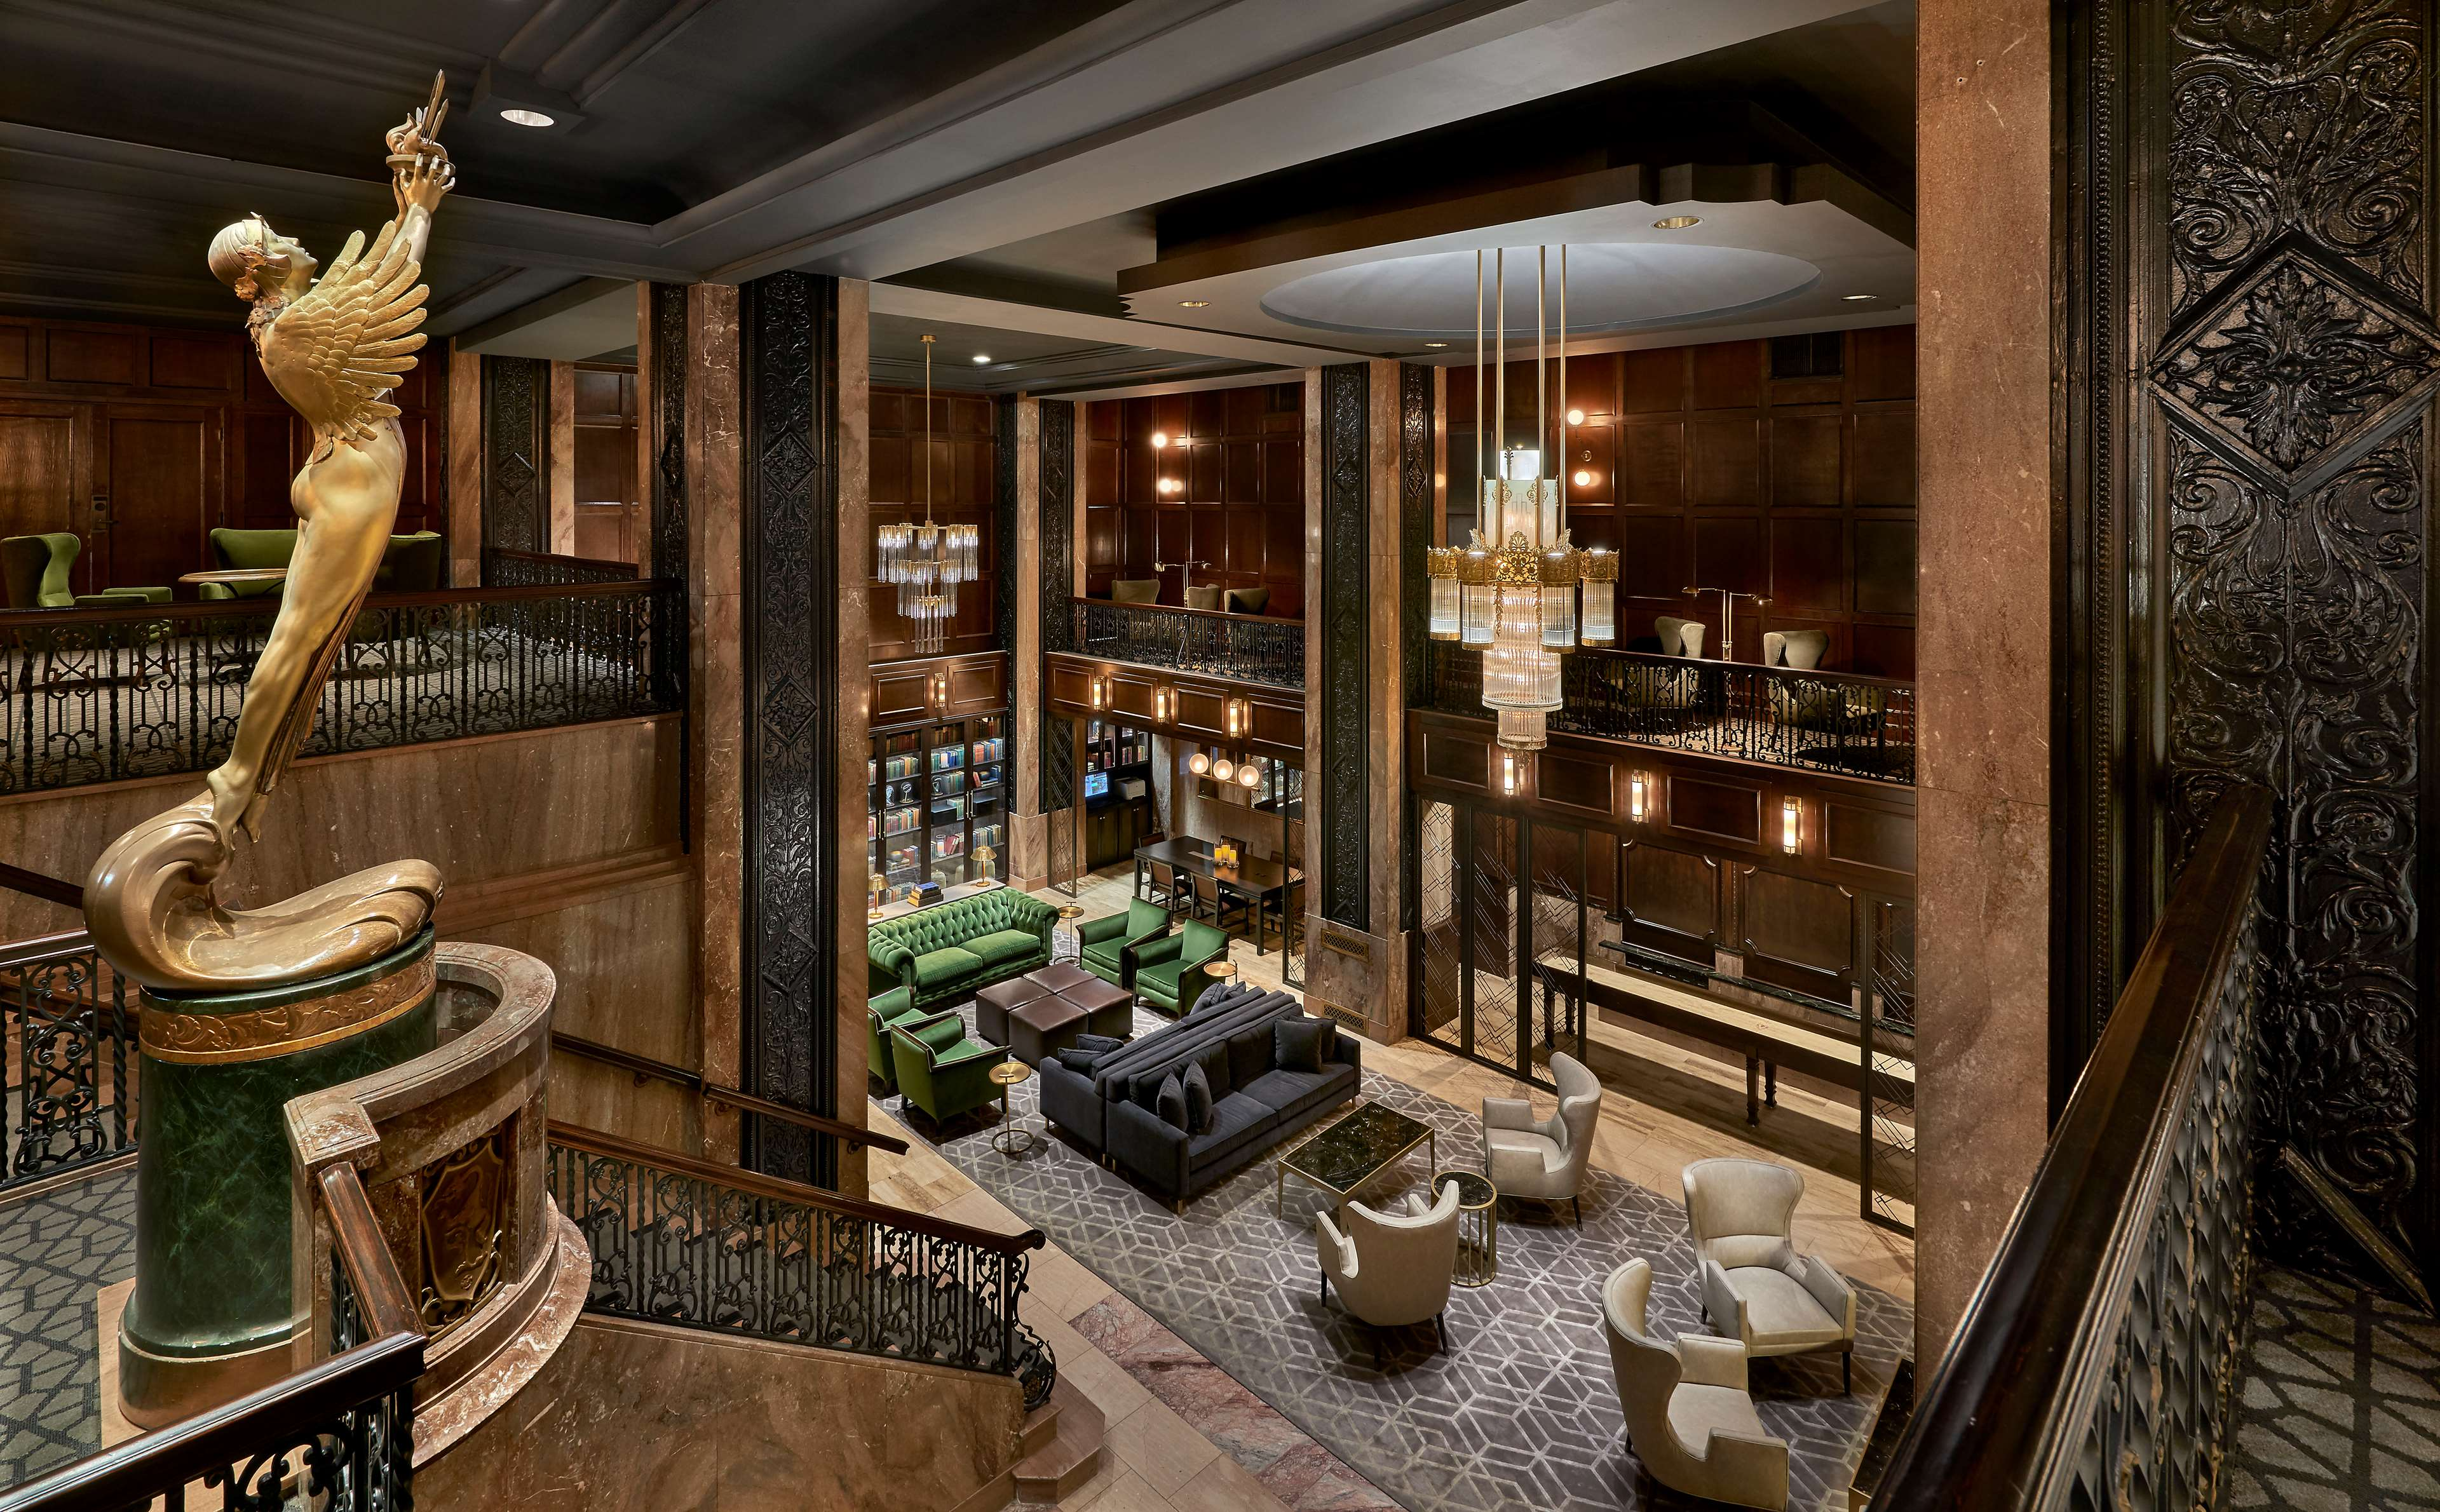 Hotel Phillips Kansas City, Curio Collection by Hilton image 5